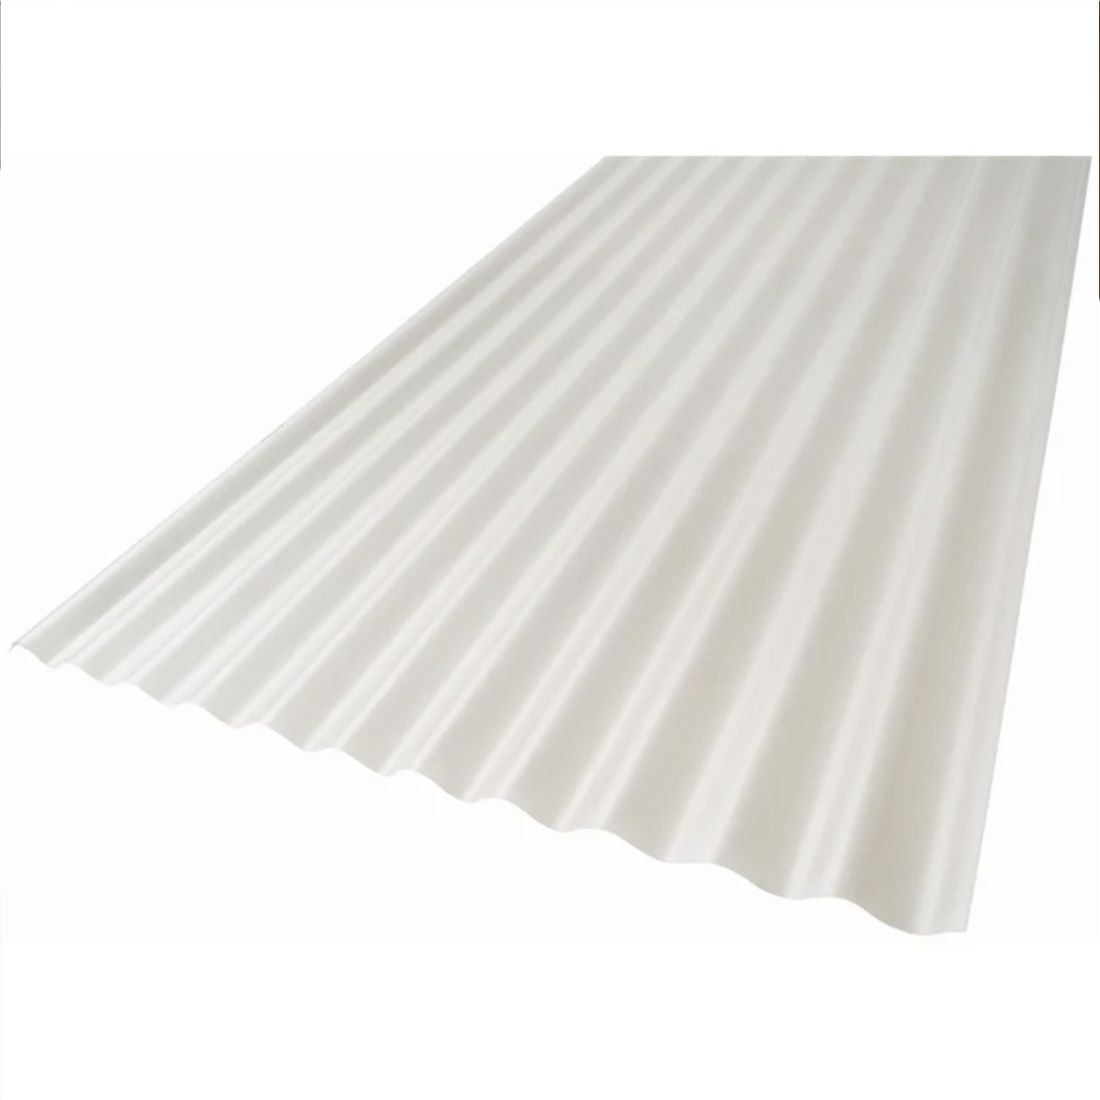 CoolTech Corrugated Ice 6000 x 860mm